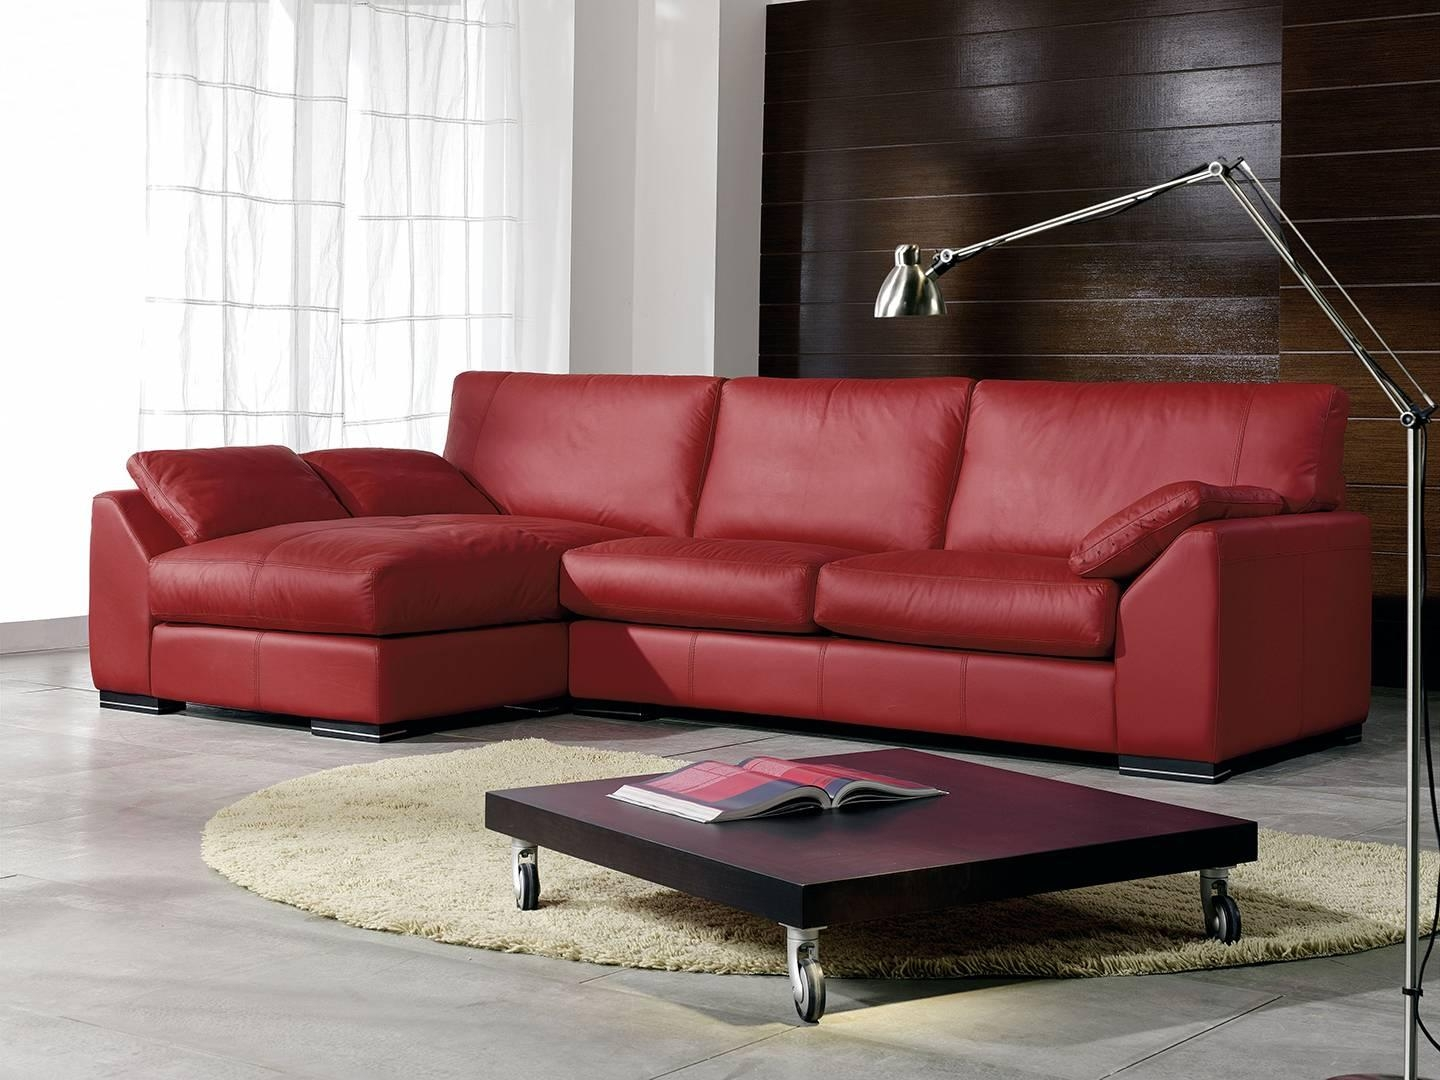 European Leather Sectional Sofas – Video And Photos Inside European Leather Sofas (View 19 of 21)